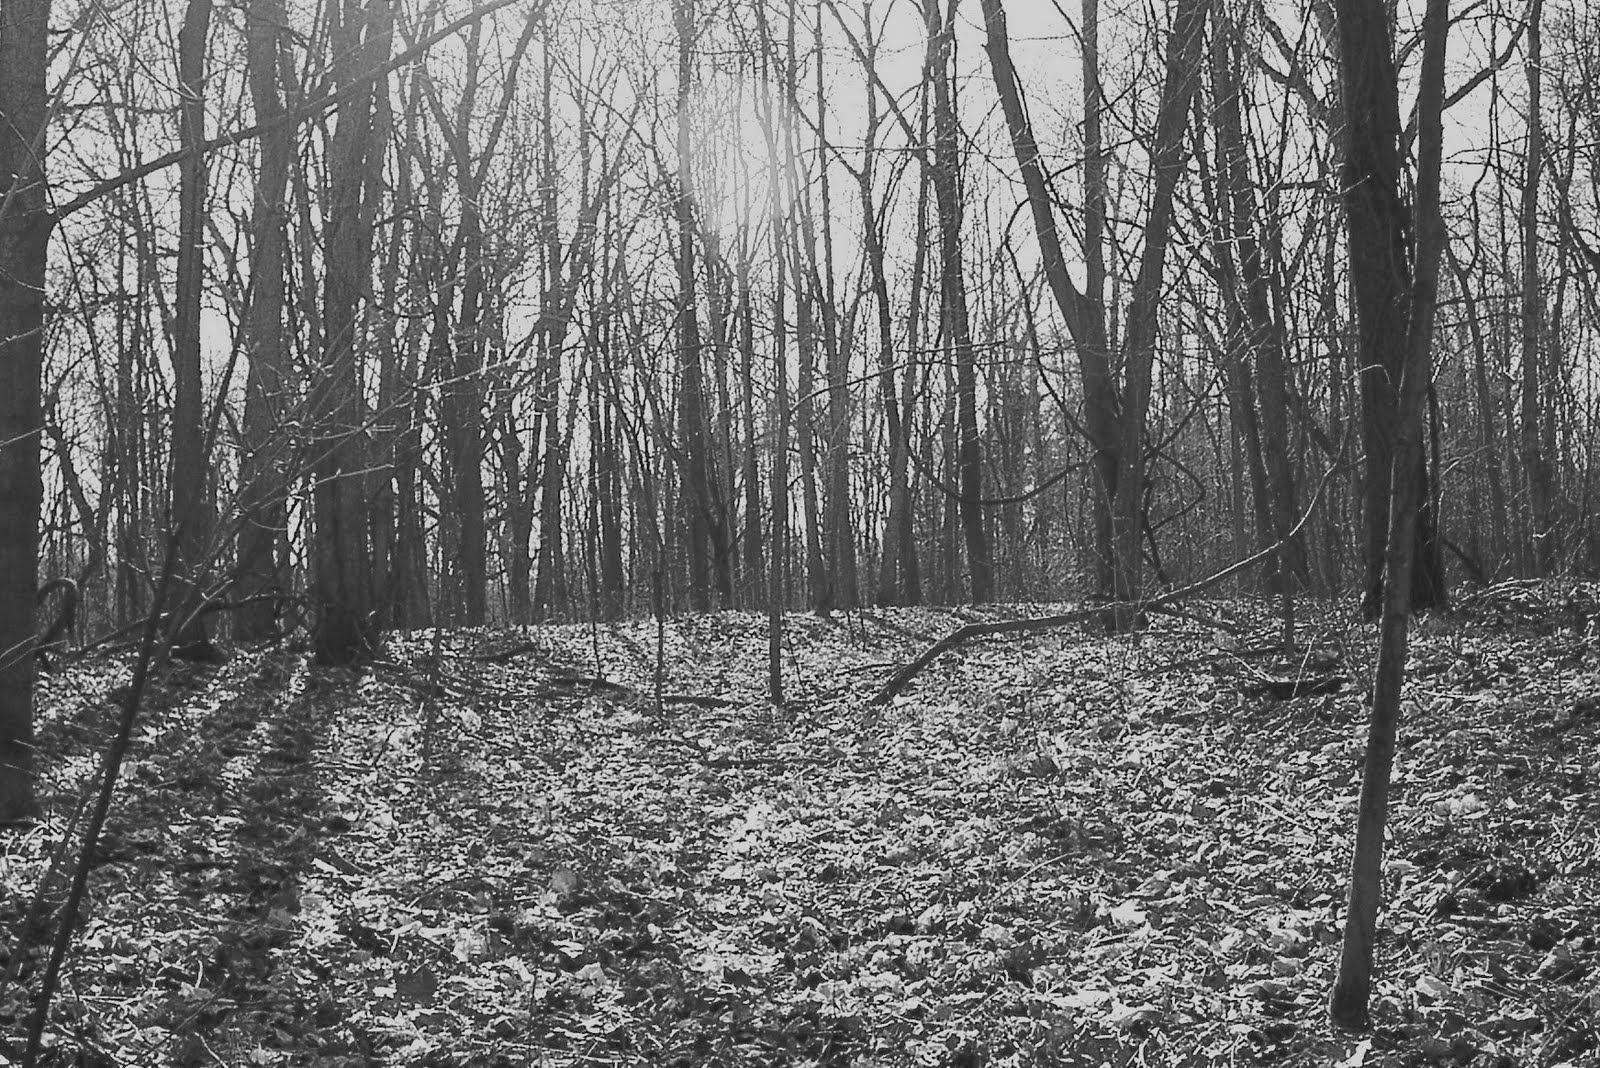 Indiana henry county shirley -  Randolph County For Their Earthwork Measuring 1080 A Circle 800 Feet In Diameter And The Large Circle That Was 1720 Feet In Diameter Or 215 X 8 1720